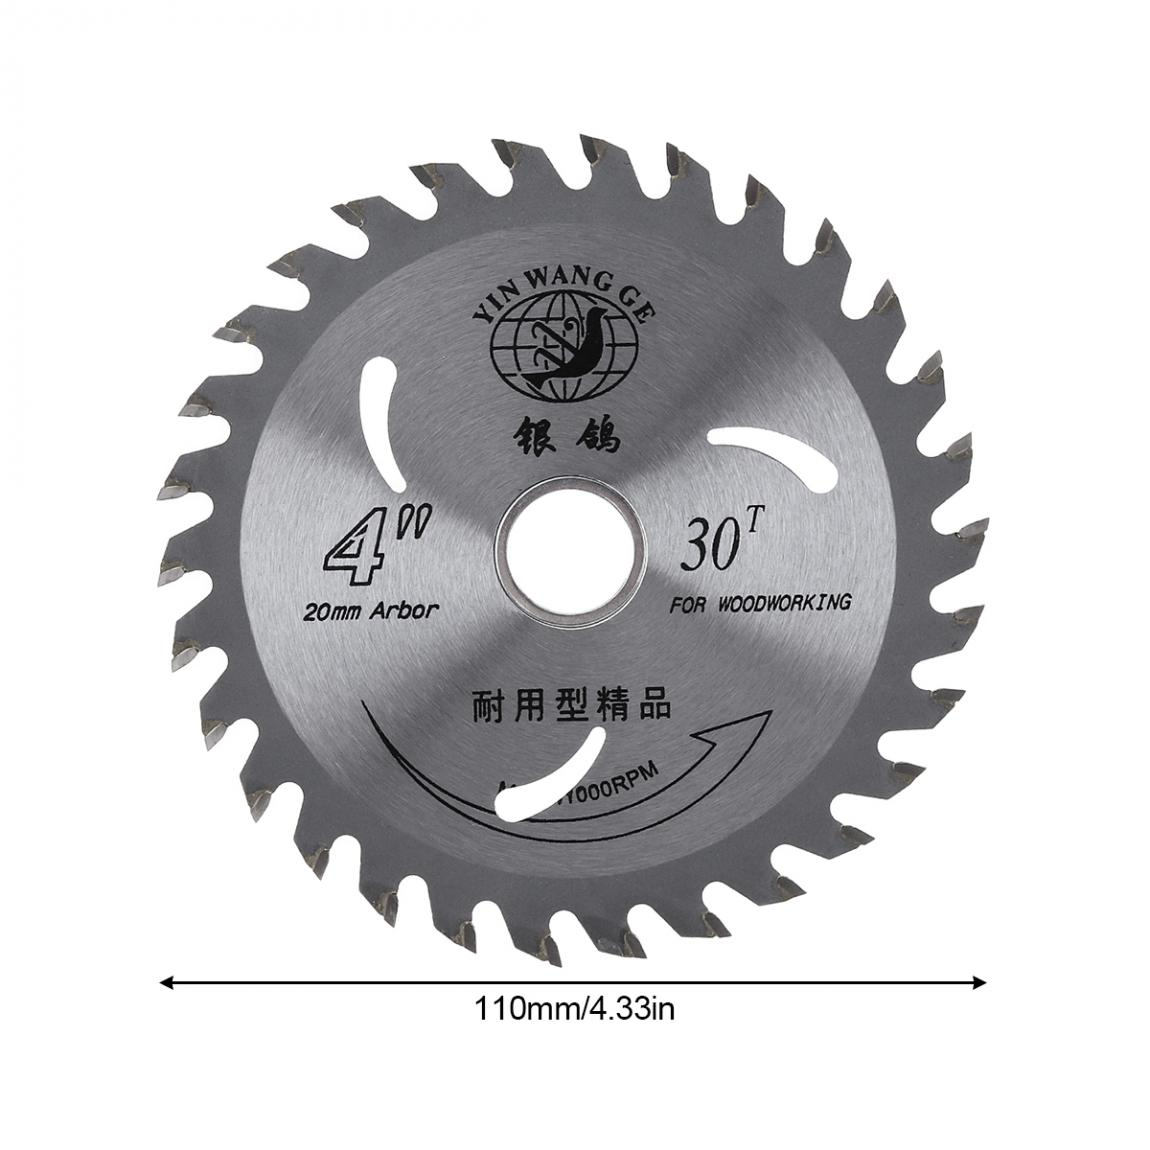 Woodworking Saw Blade 110mm  Alloy Steel Circular Saw Blade Wood Disc Cutting Tool Aperture 20mm For Rotating Woodworking Tools